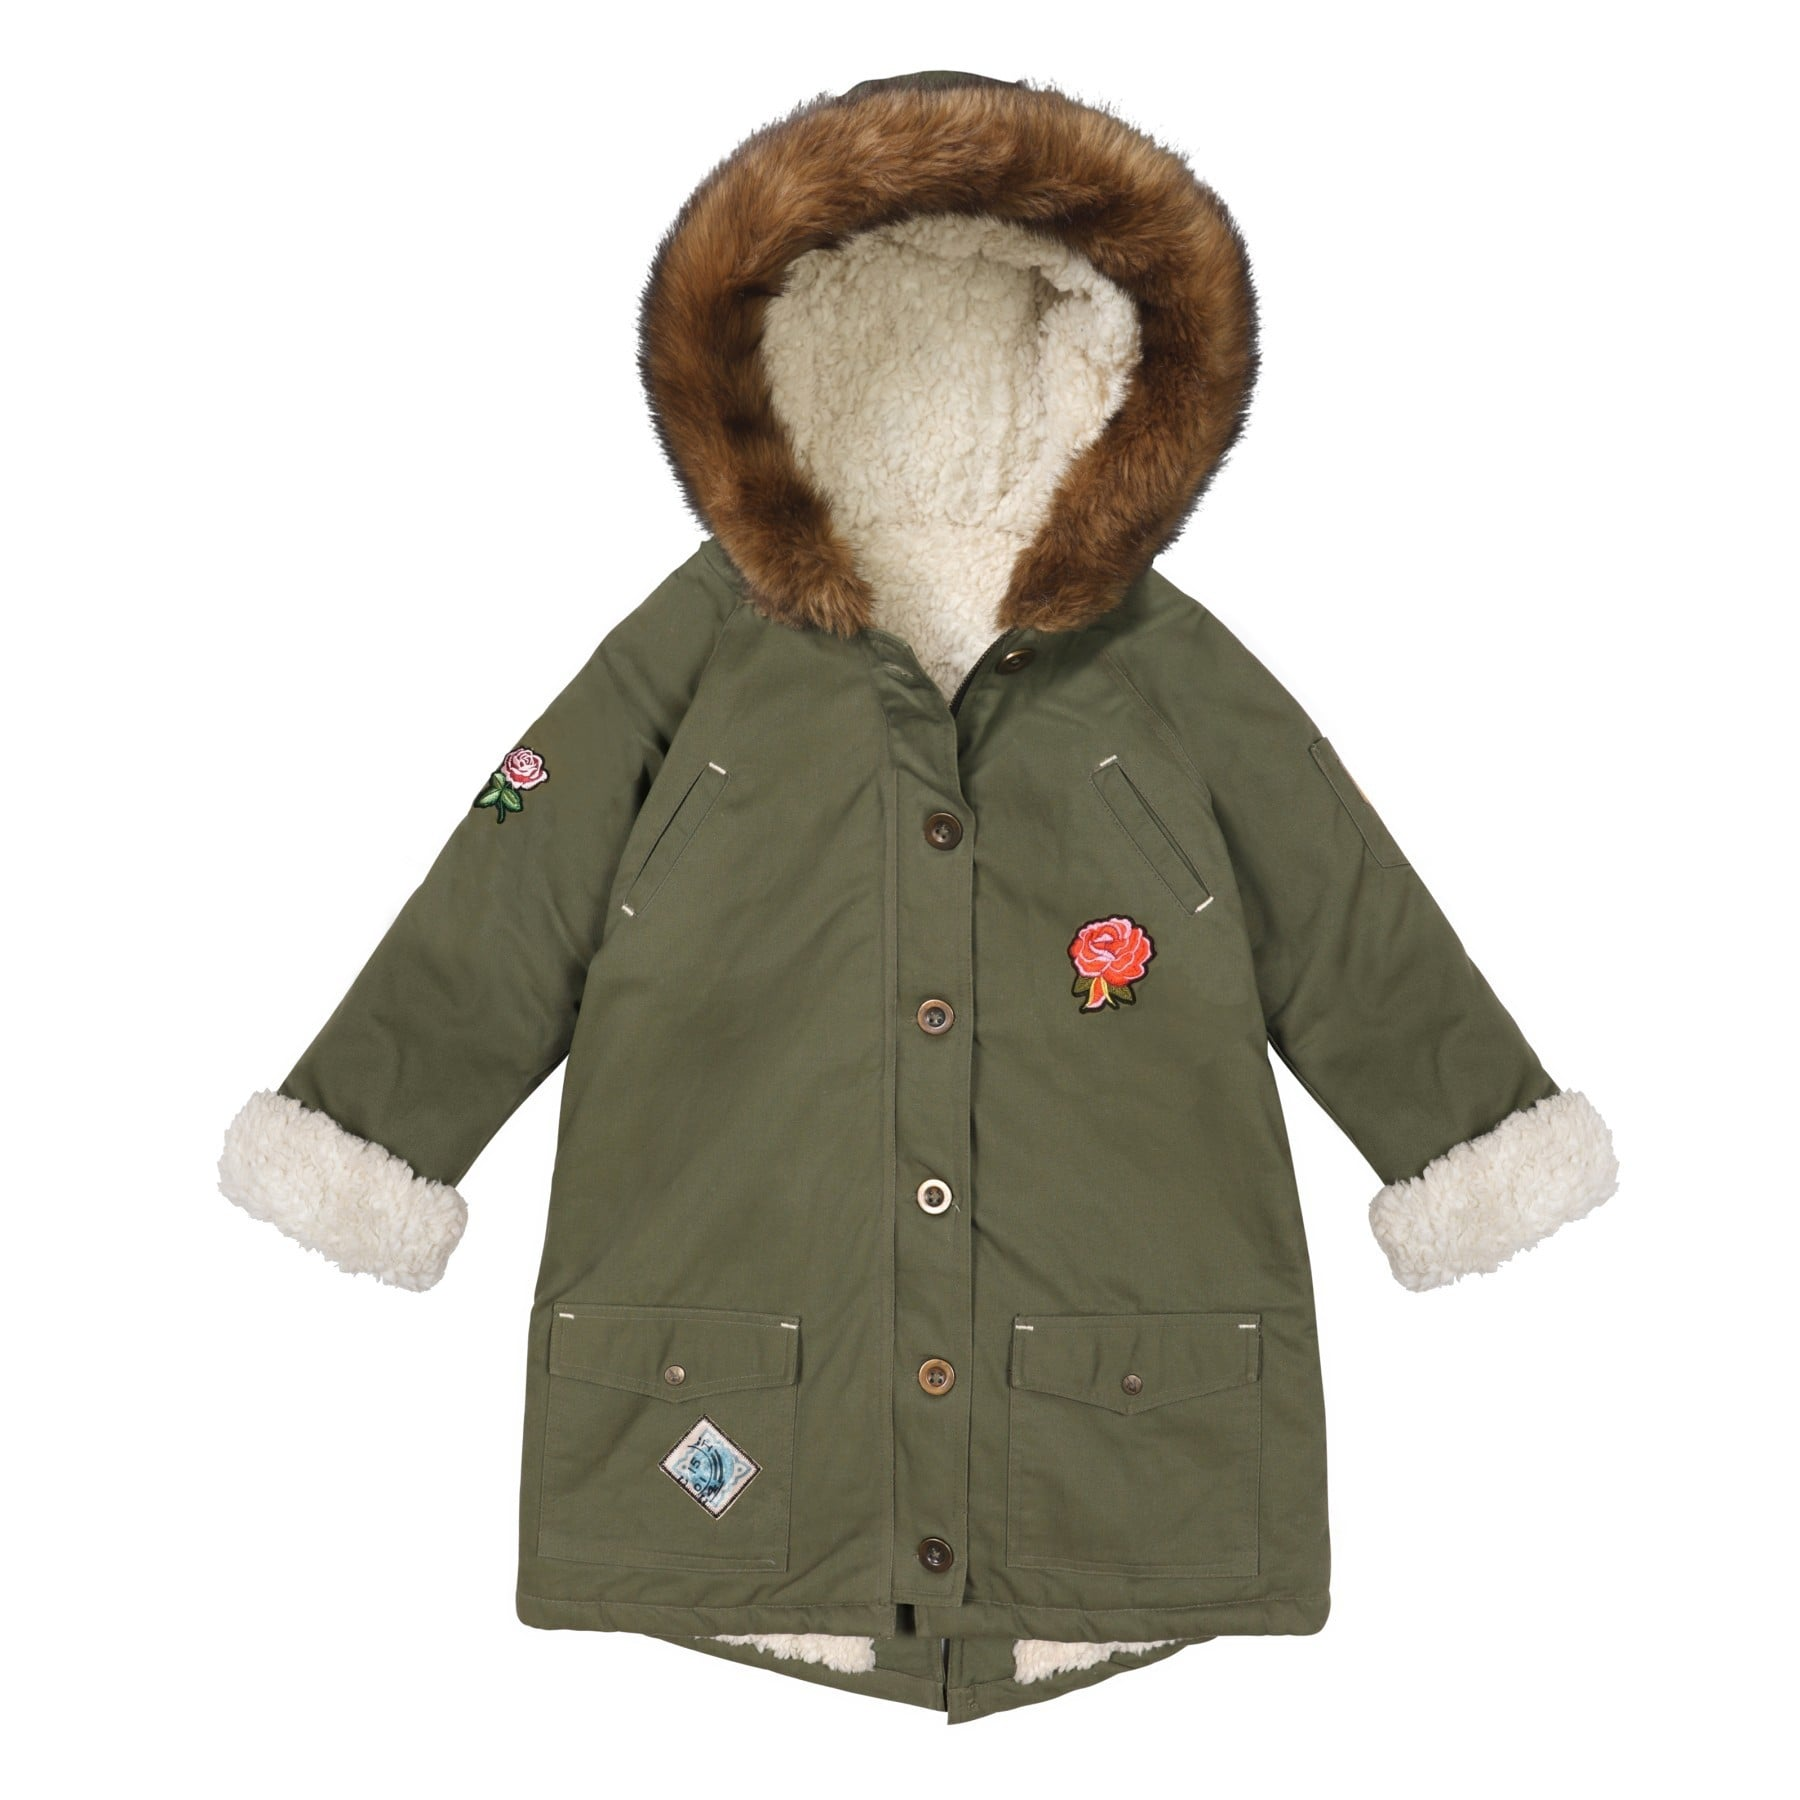 parka-longue-manteau-fille-hiver-kaki-ecusson-protection-animal-shepherd-mode-ve?tement-enfant-long-kaki-min